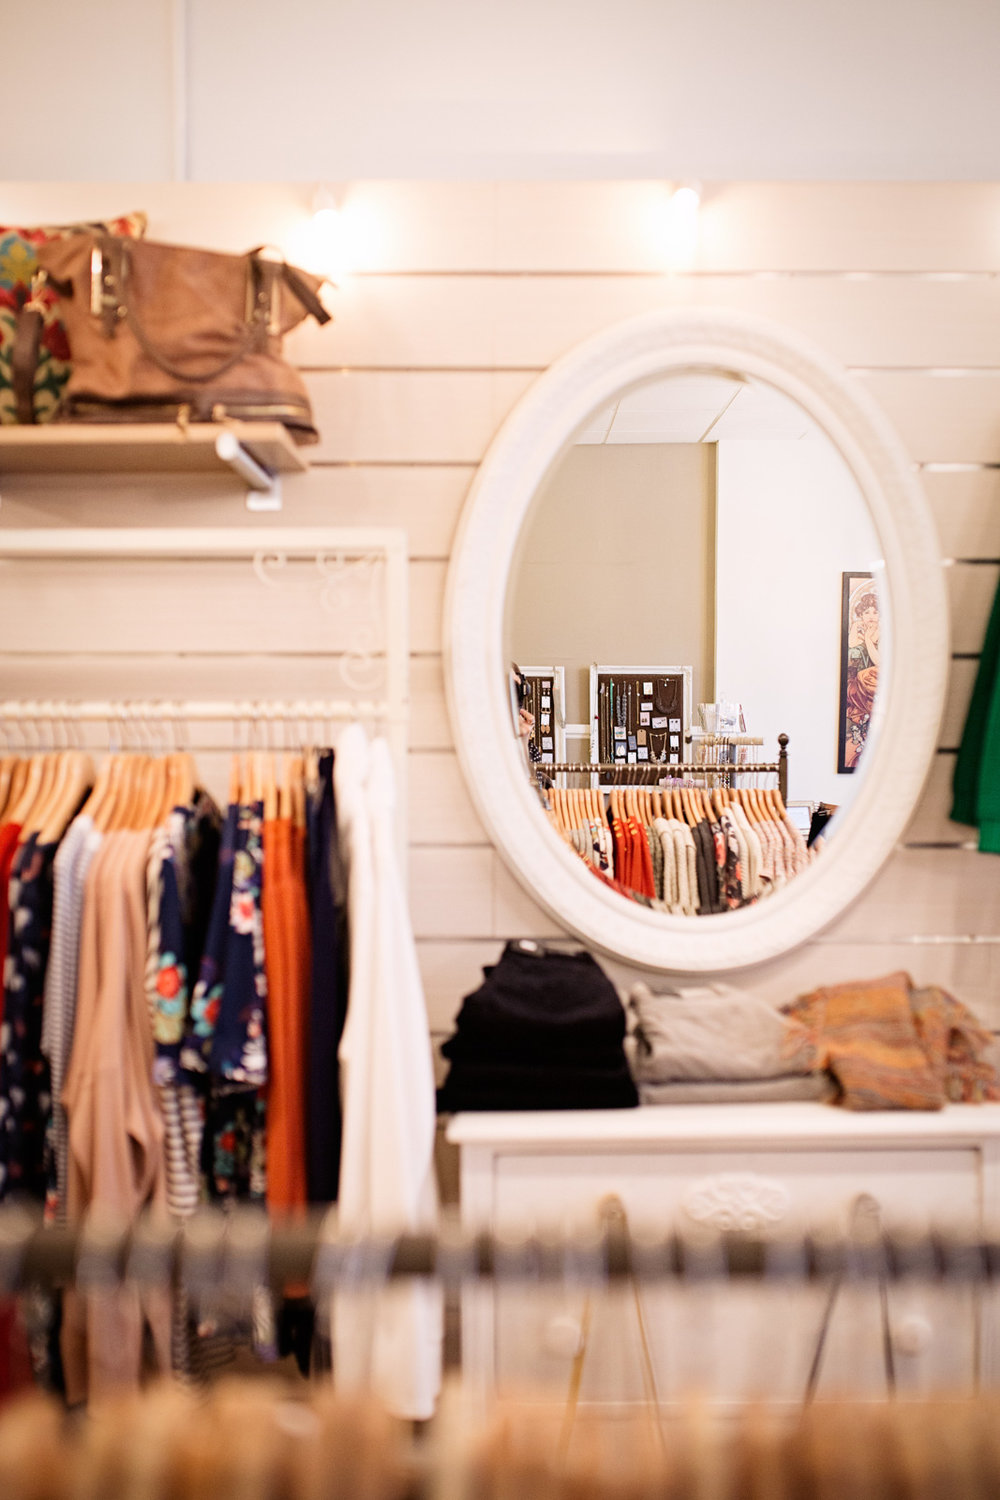 Meadow boutique seattle retail clothing store Yuliya Rae photography branding services-16.jpg